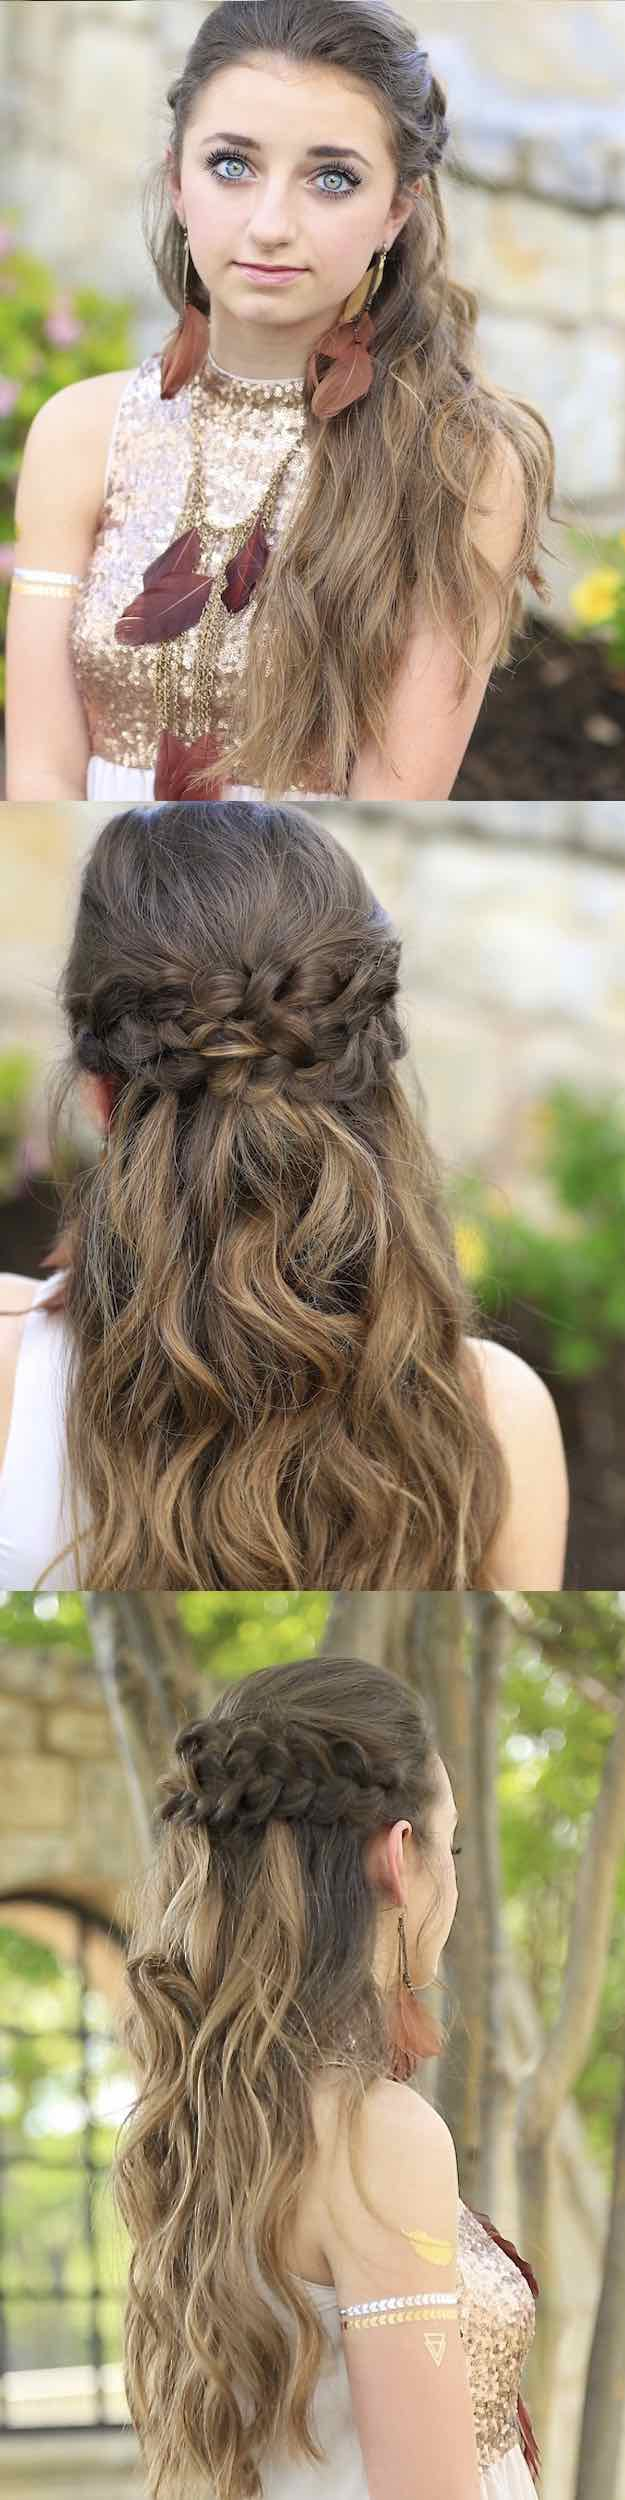 2018 Easy Half-Up Half-Down Hairstyle Tutorials 1